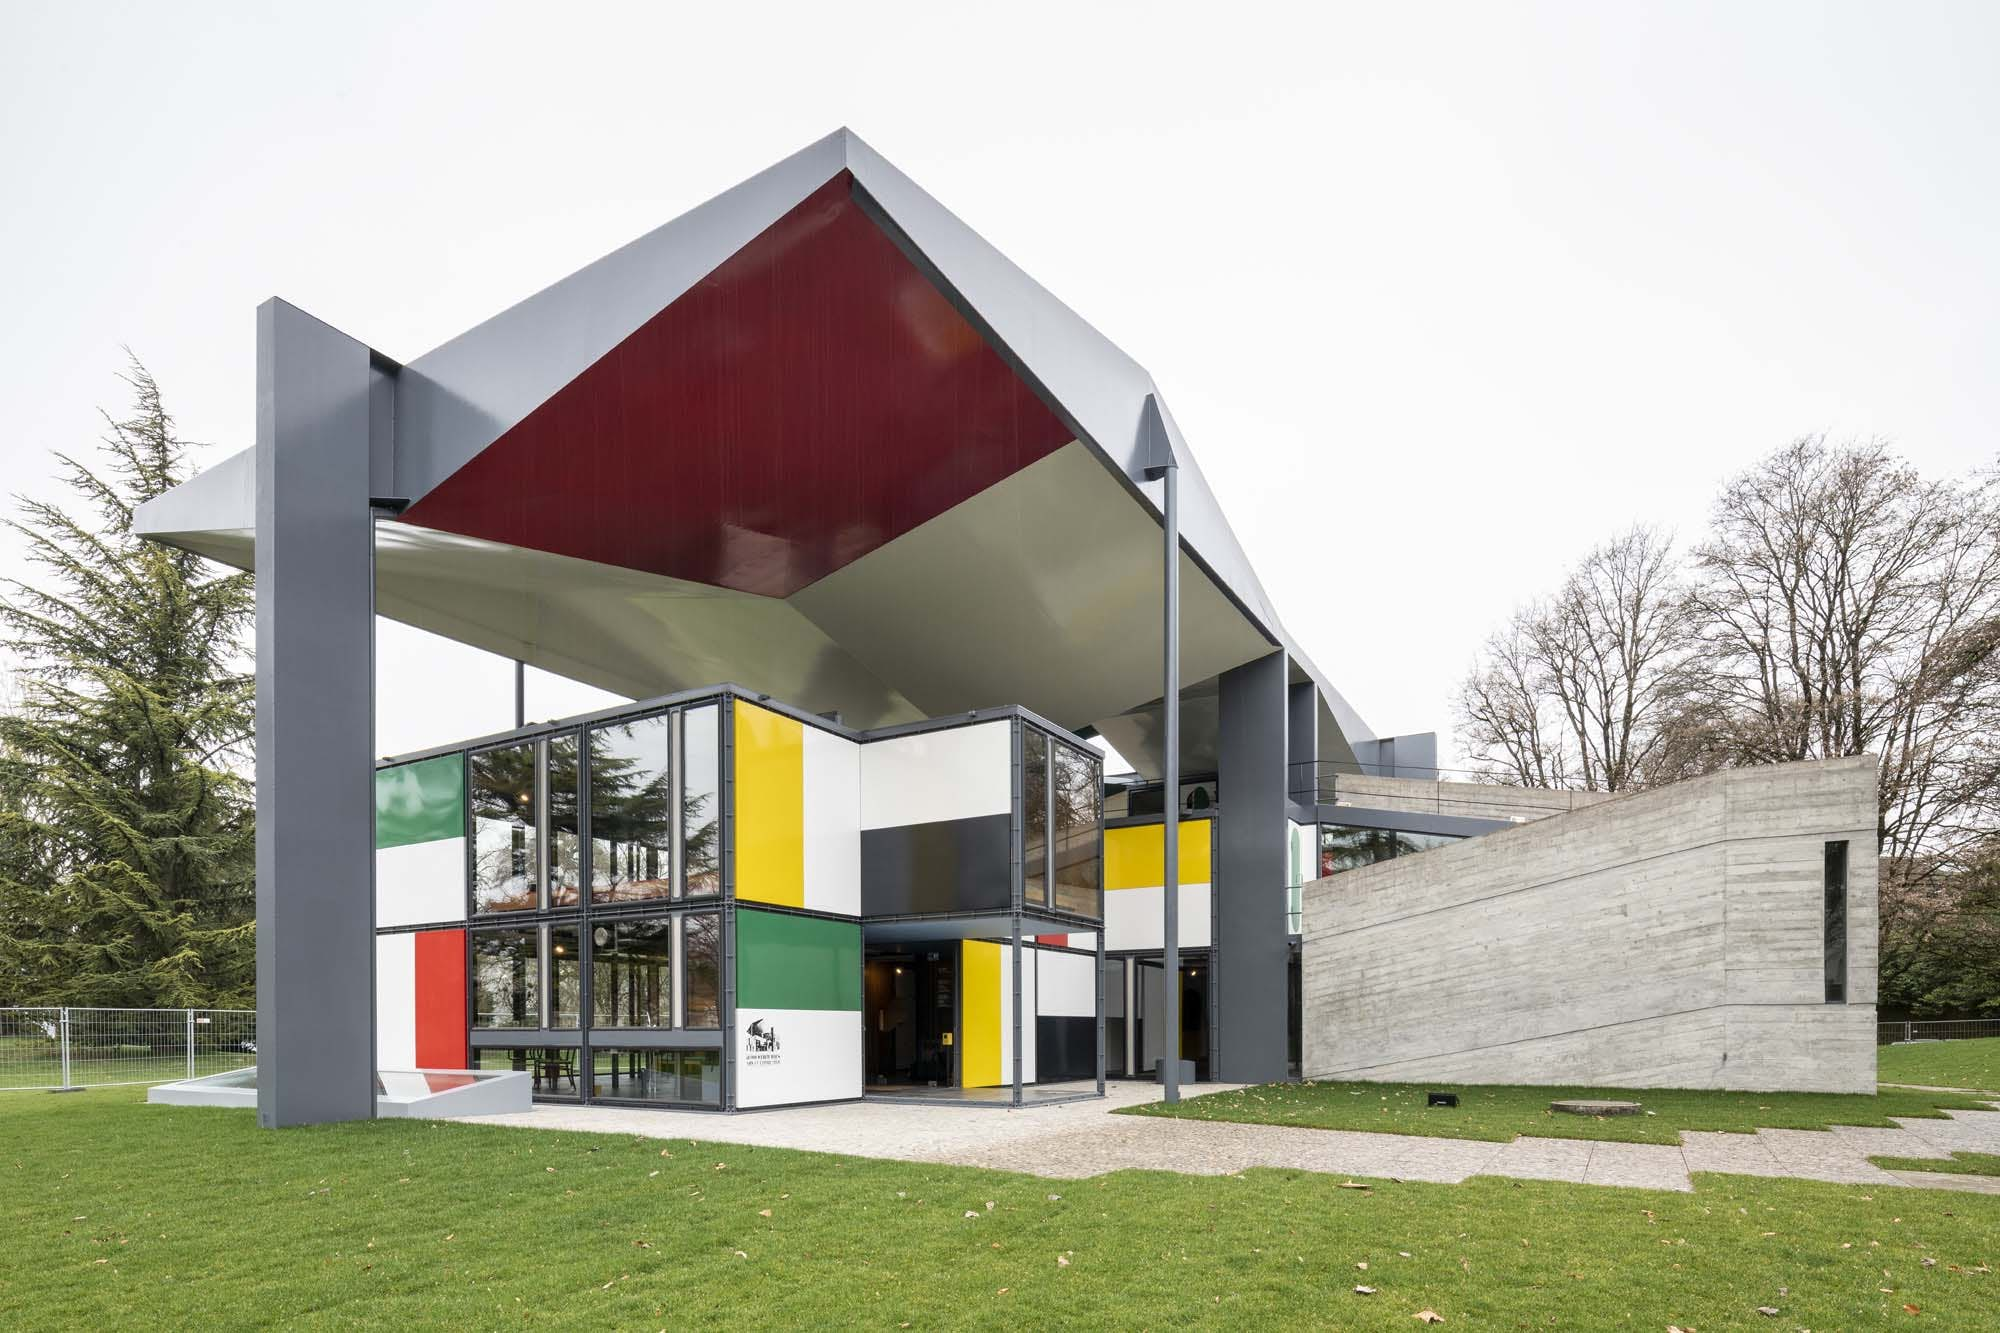 Zurich S Architectural Jewel Pavillon Le Corbusier Is Reopening Lonely Planet